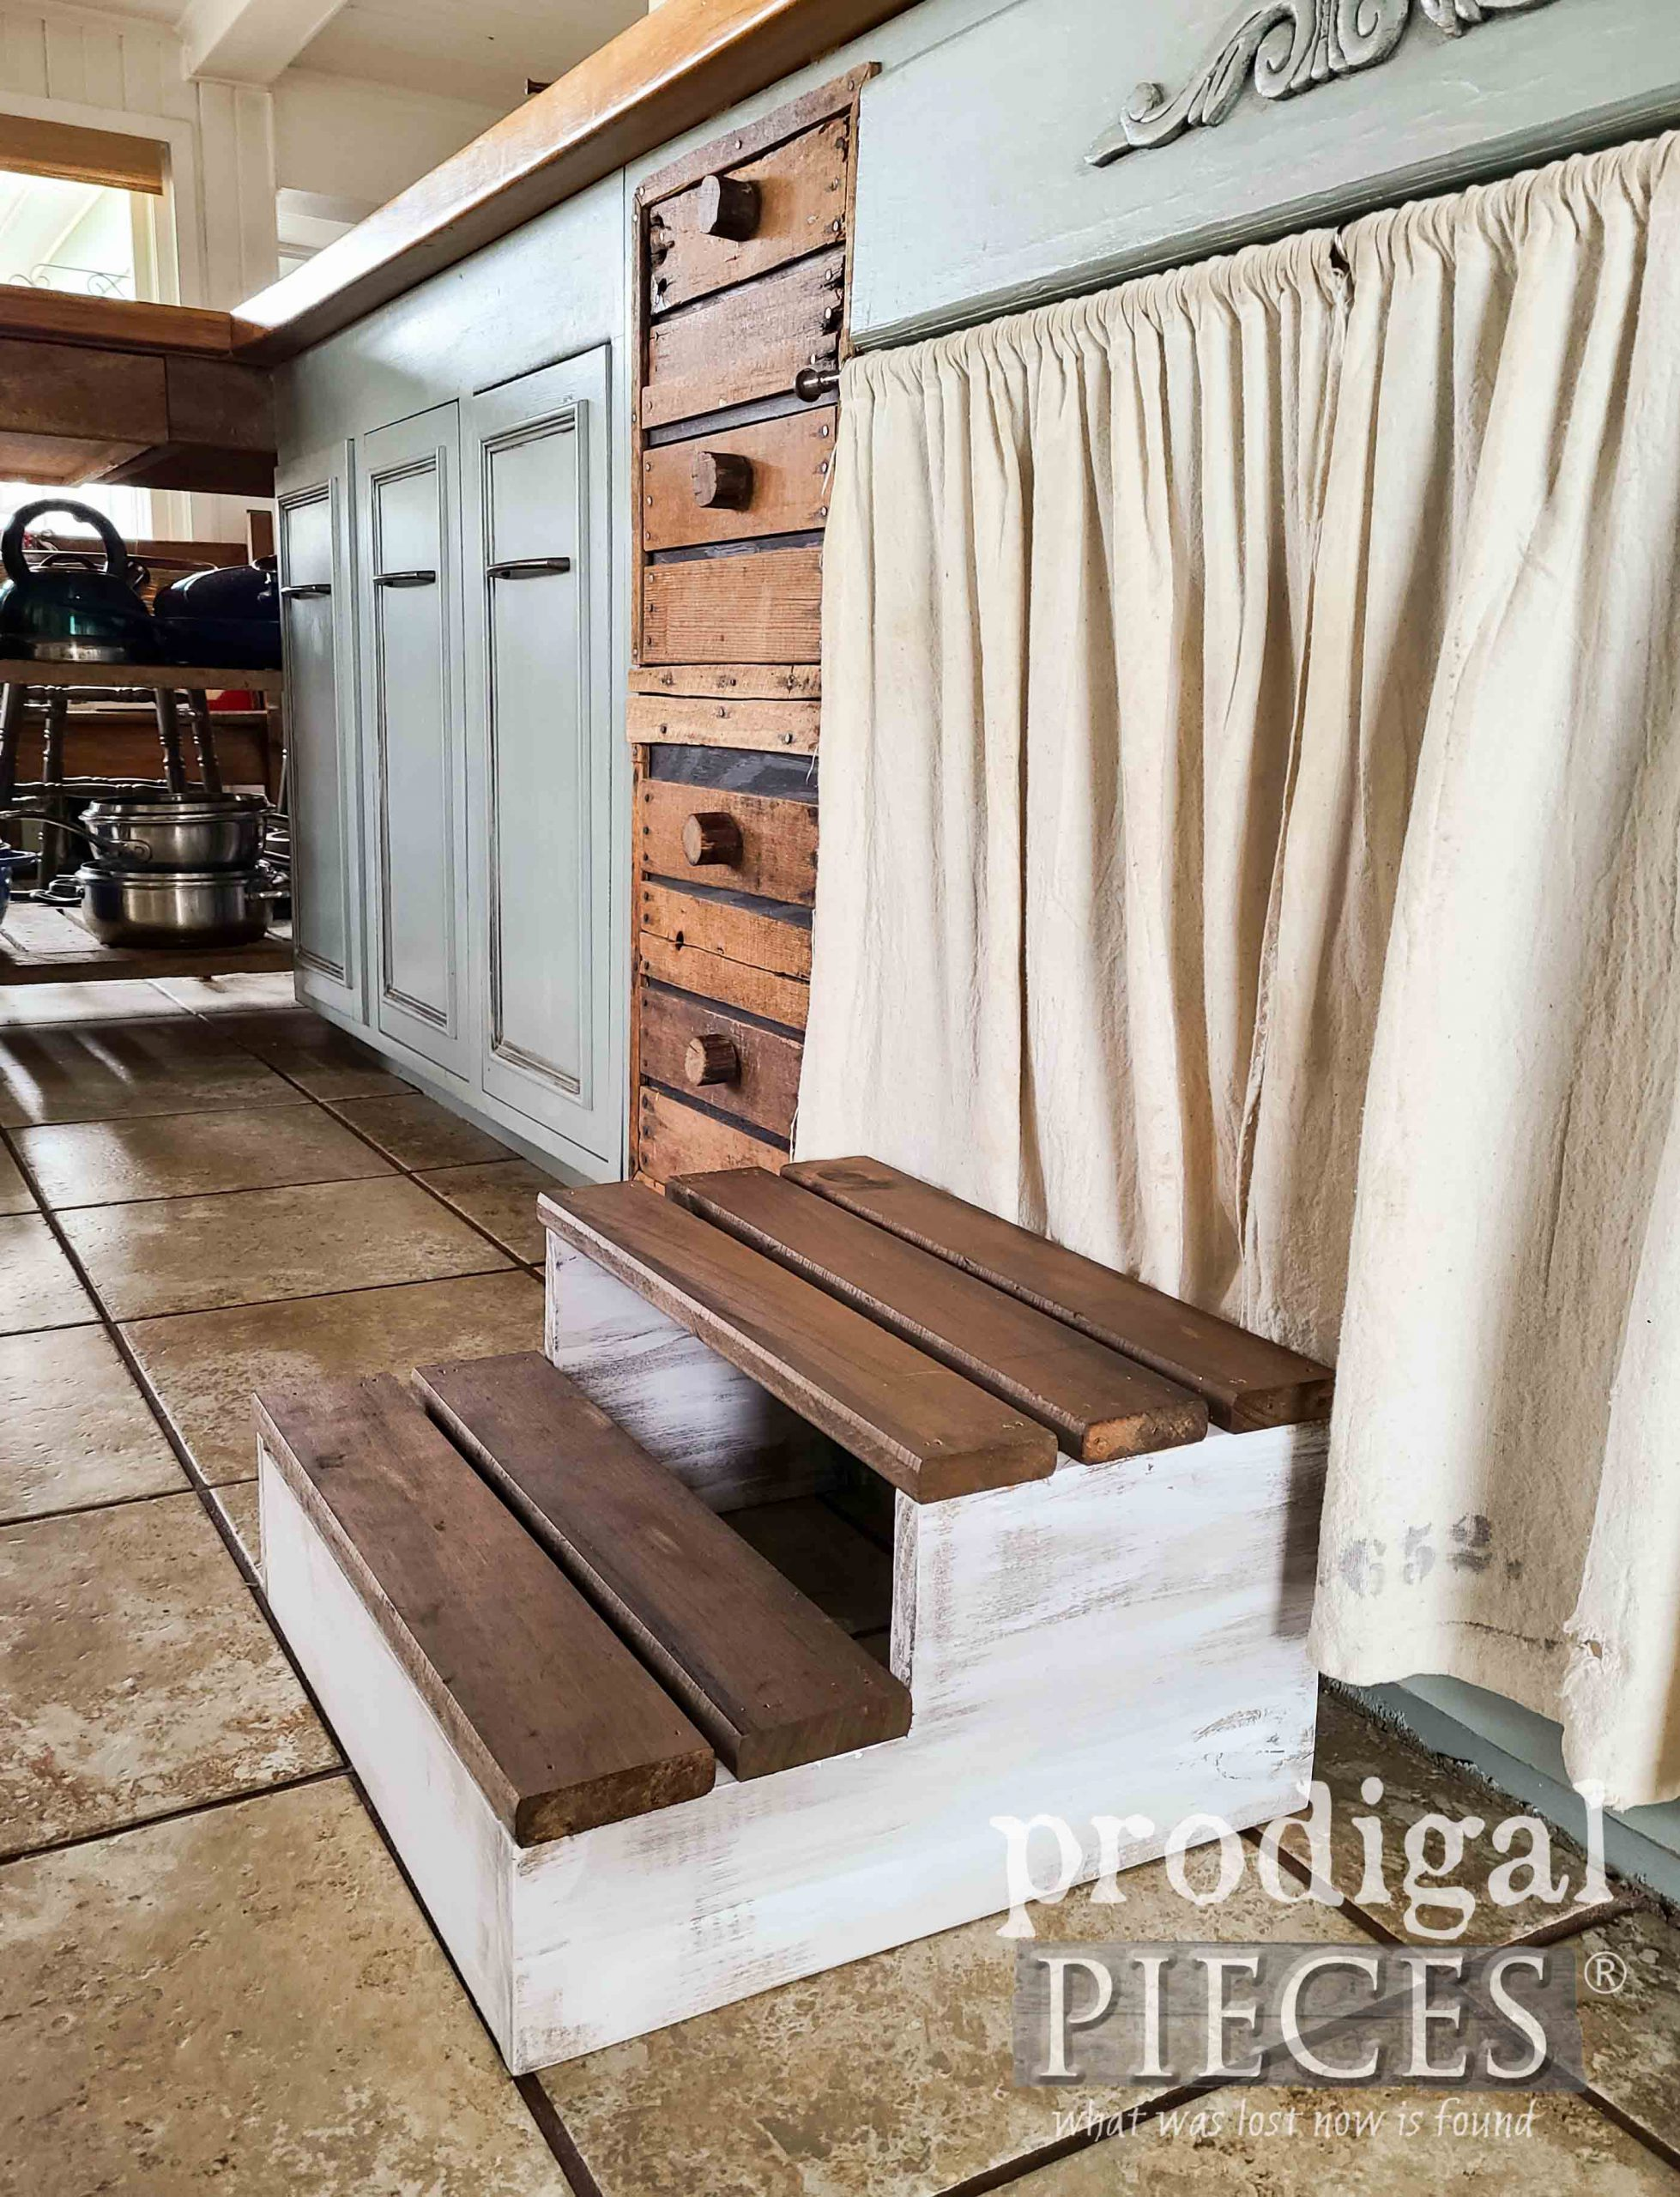 DIY Wood Slat Step Stool for Kitchen and more at Prodigal Pieces | prodigalpieces.com #prodigalpieces #farmhouse #kitchen #diy #home